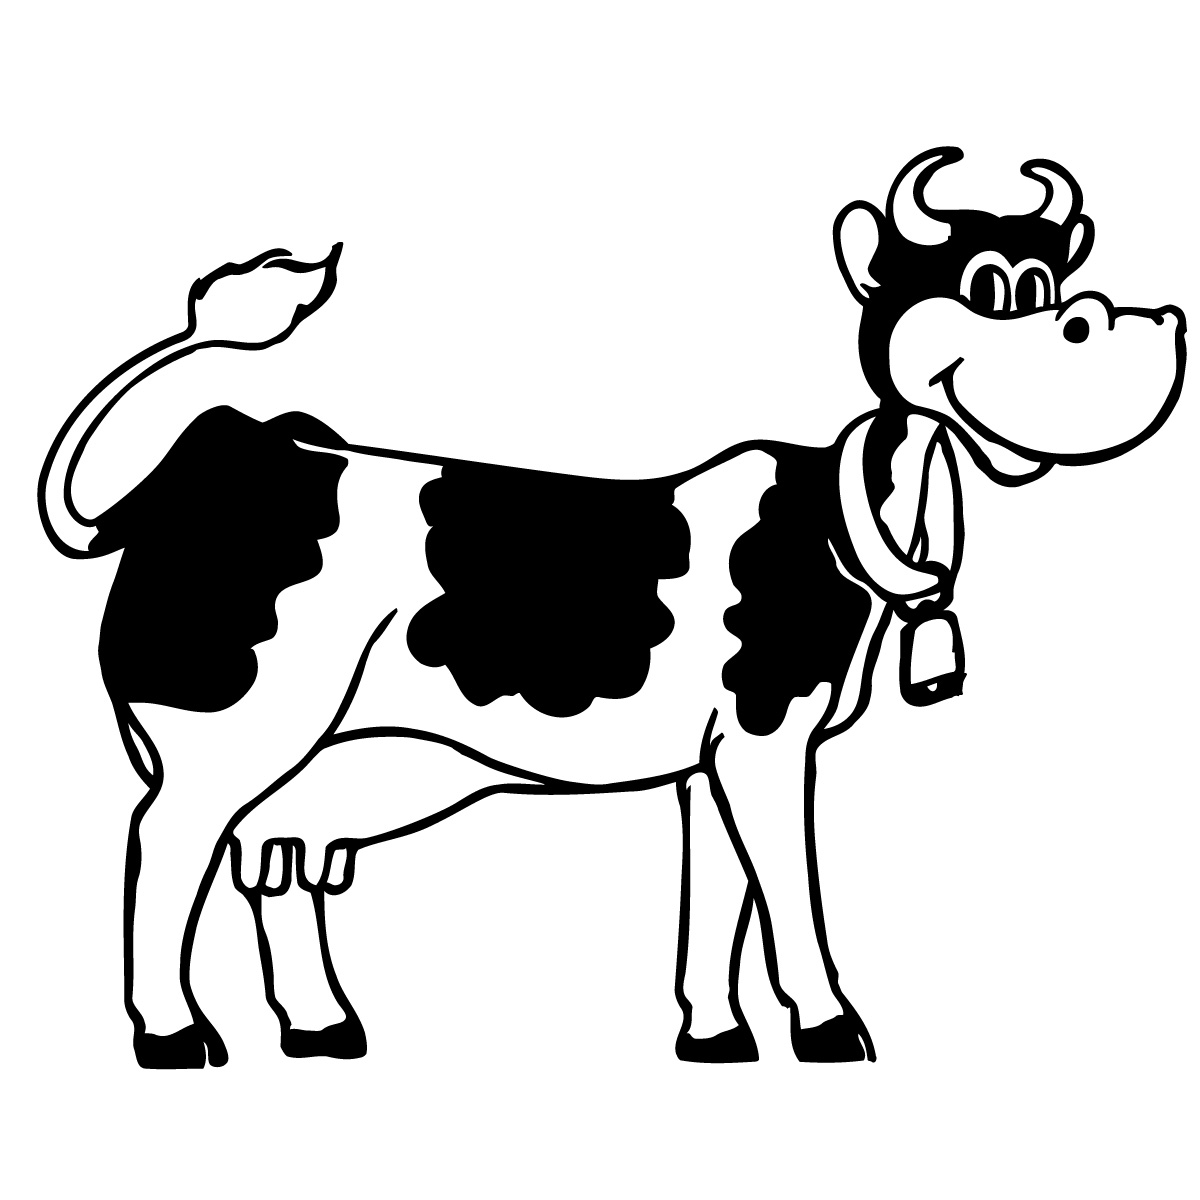 Clipart fat cows skinny cows black and white clipart black and white library Cow Clipart Black And White | Clipart Panda - Free Clipart Images clipart black and white library